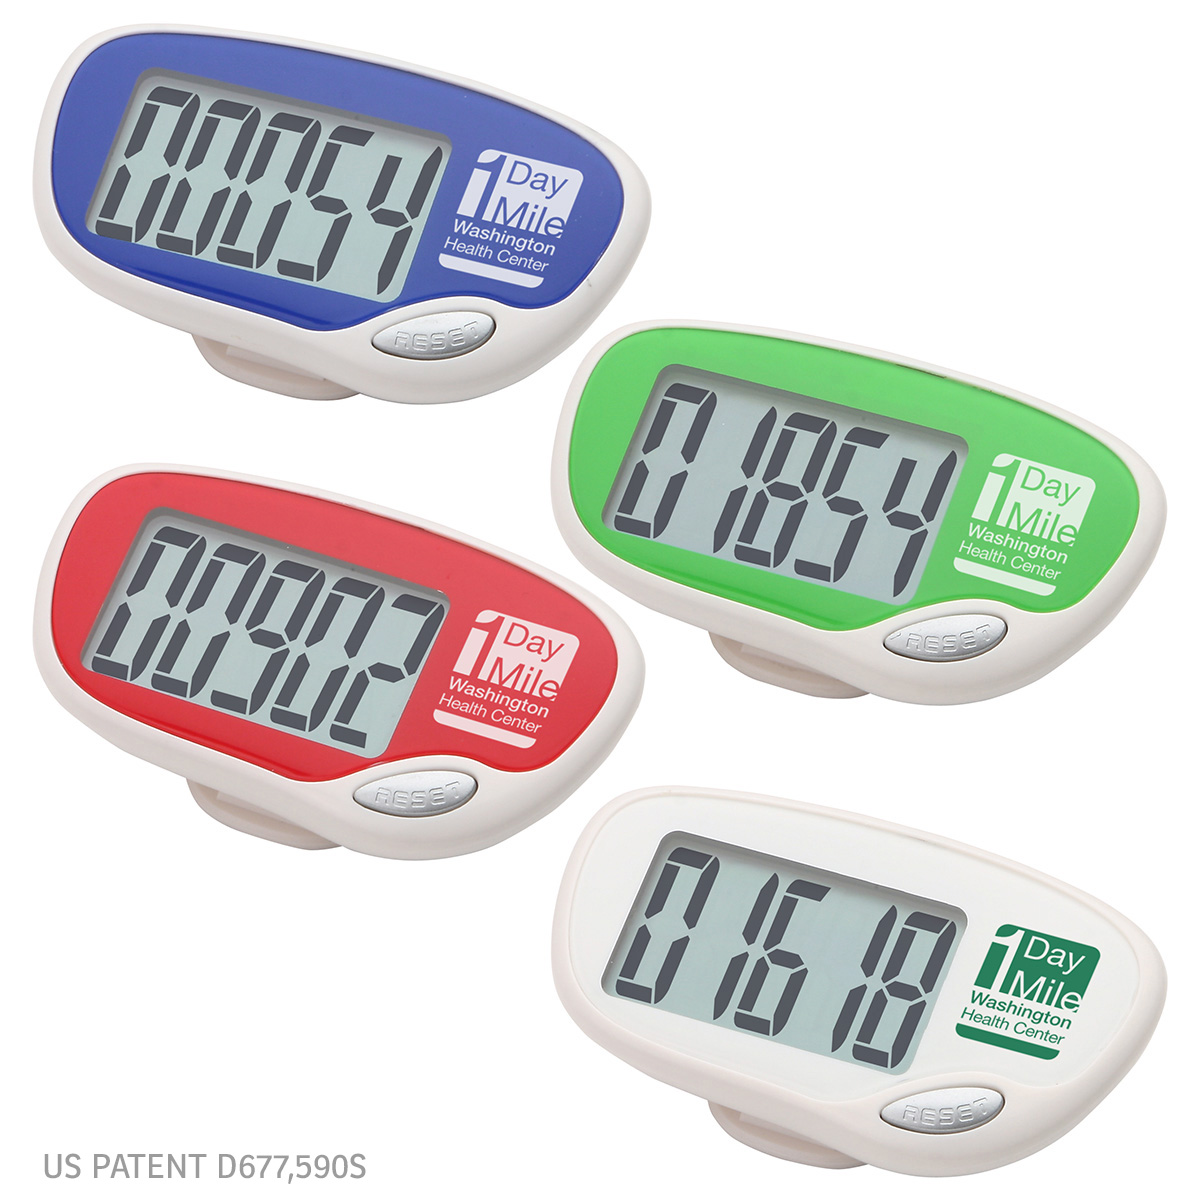 Easy Read Large Screen Pedometer, WHF-ER11, 1 Colour Imprint